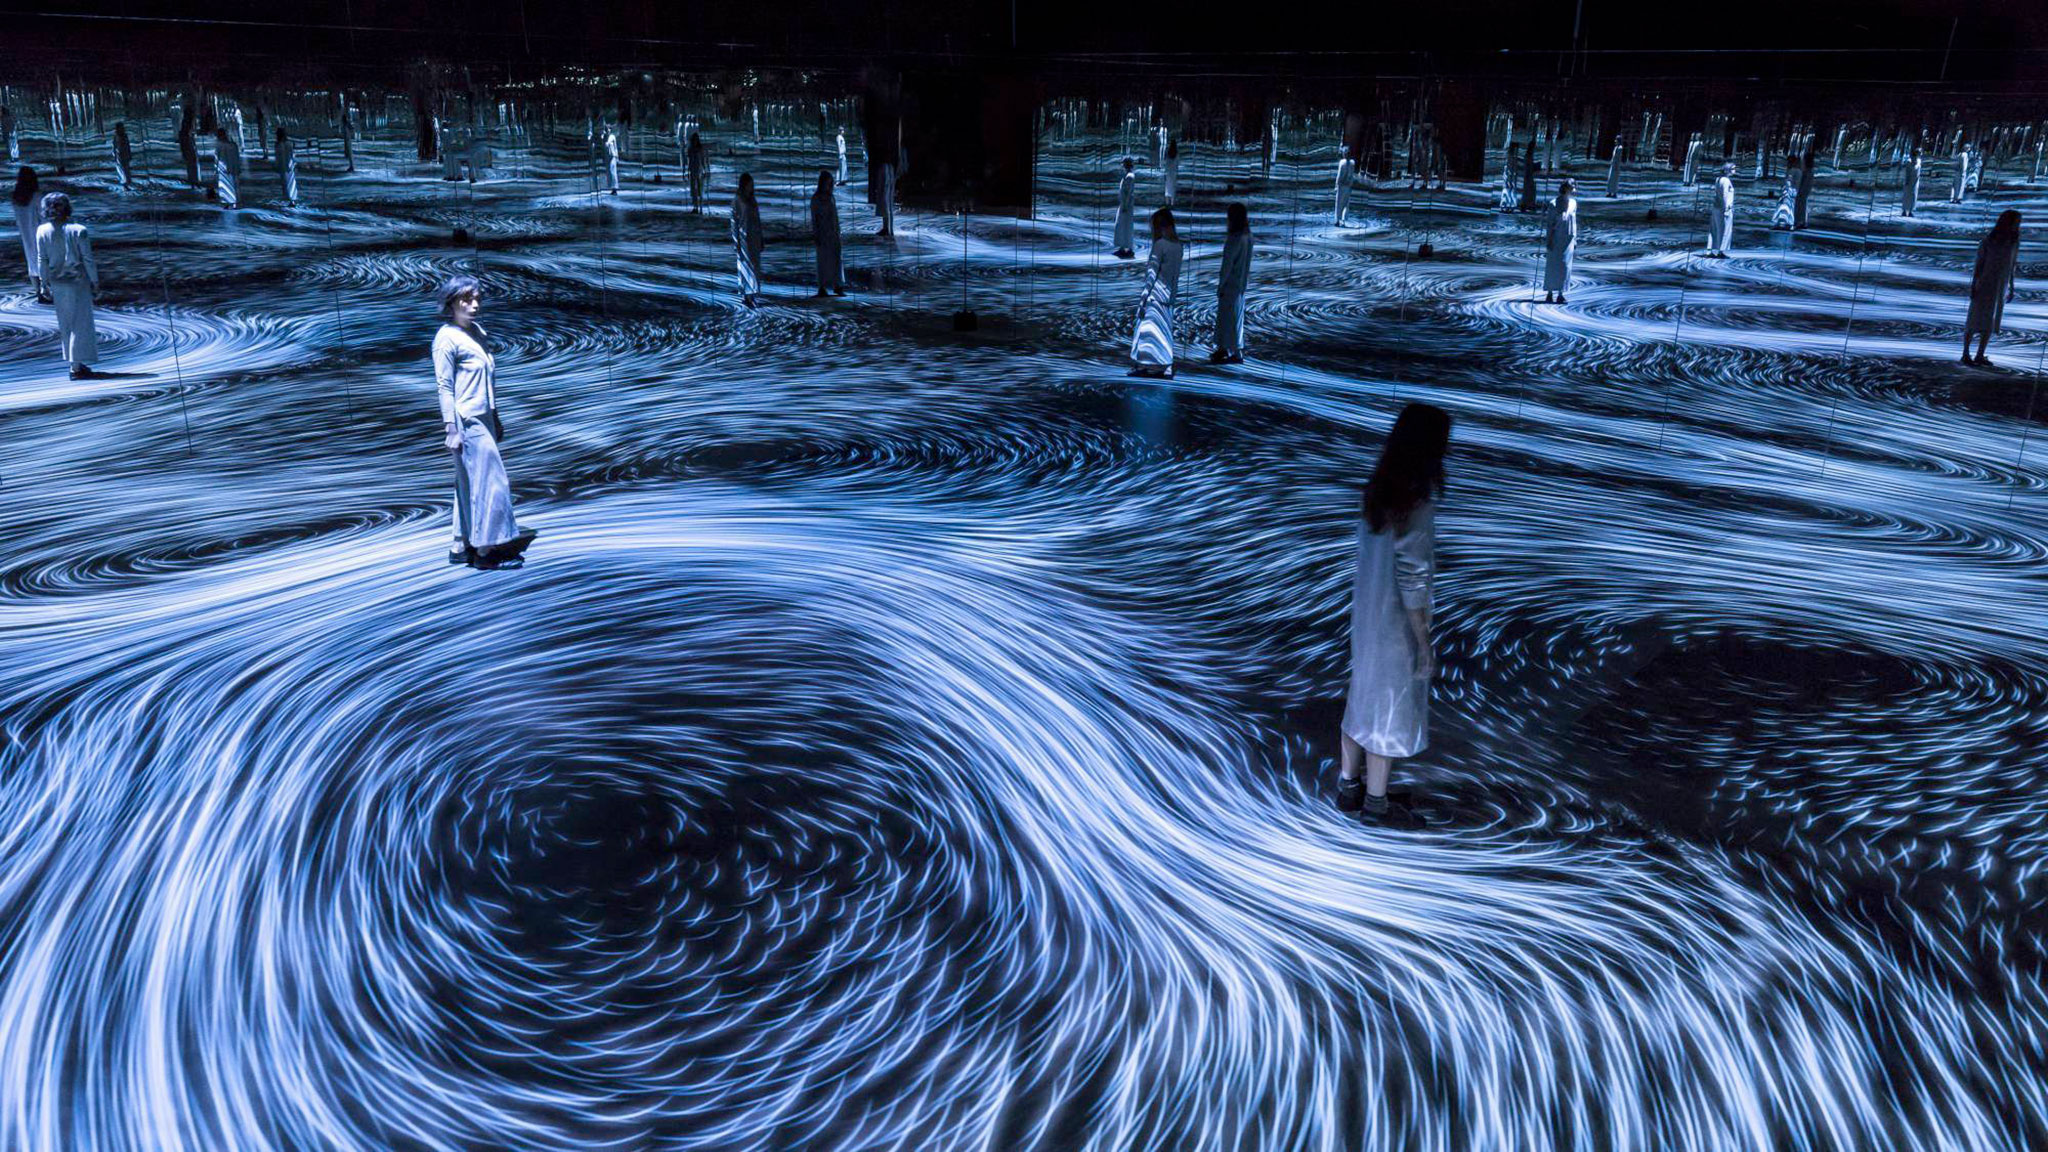 """Moving Creates Vortices and Vortices Create Movement"" by Teamlab"